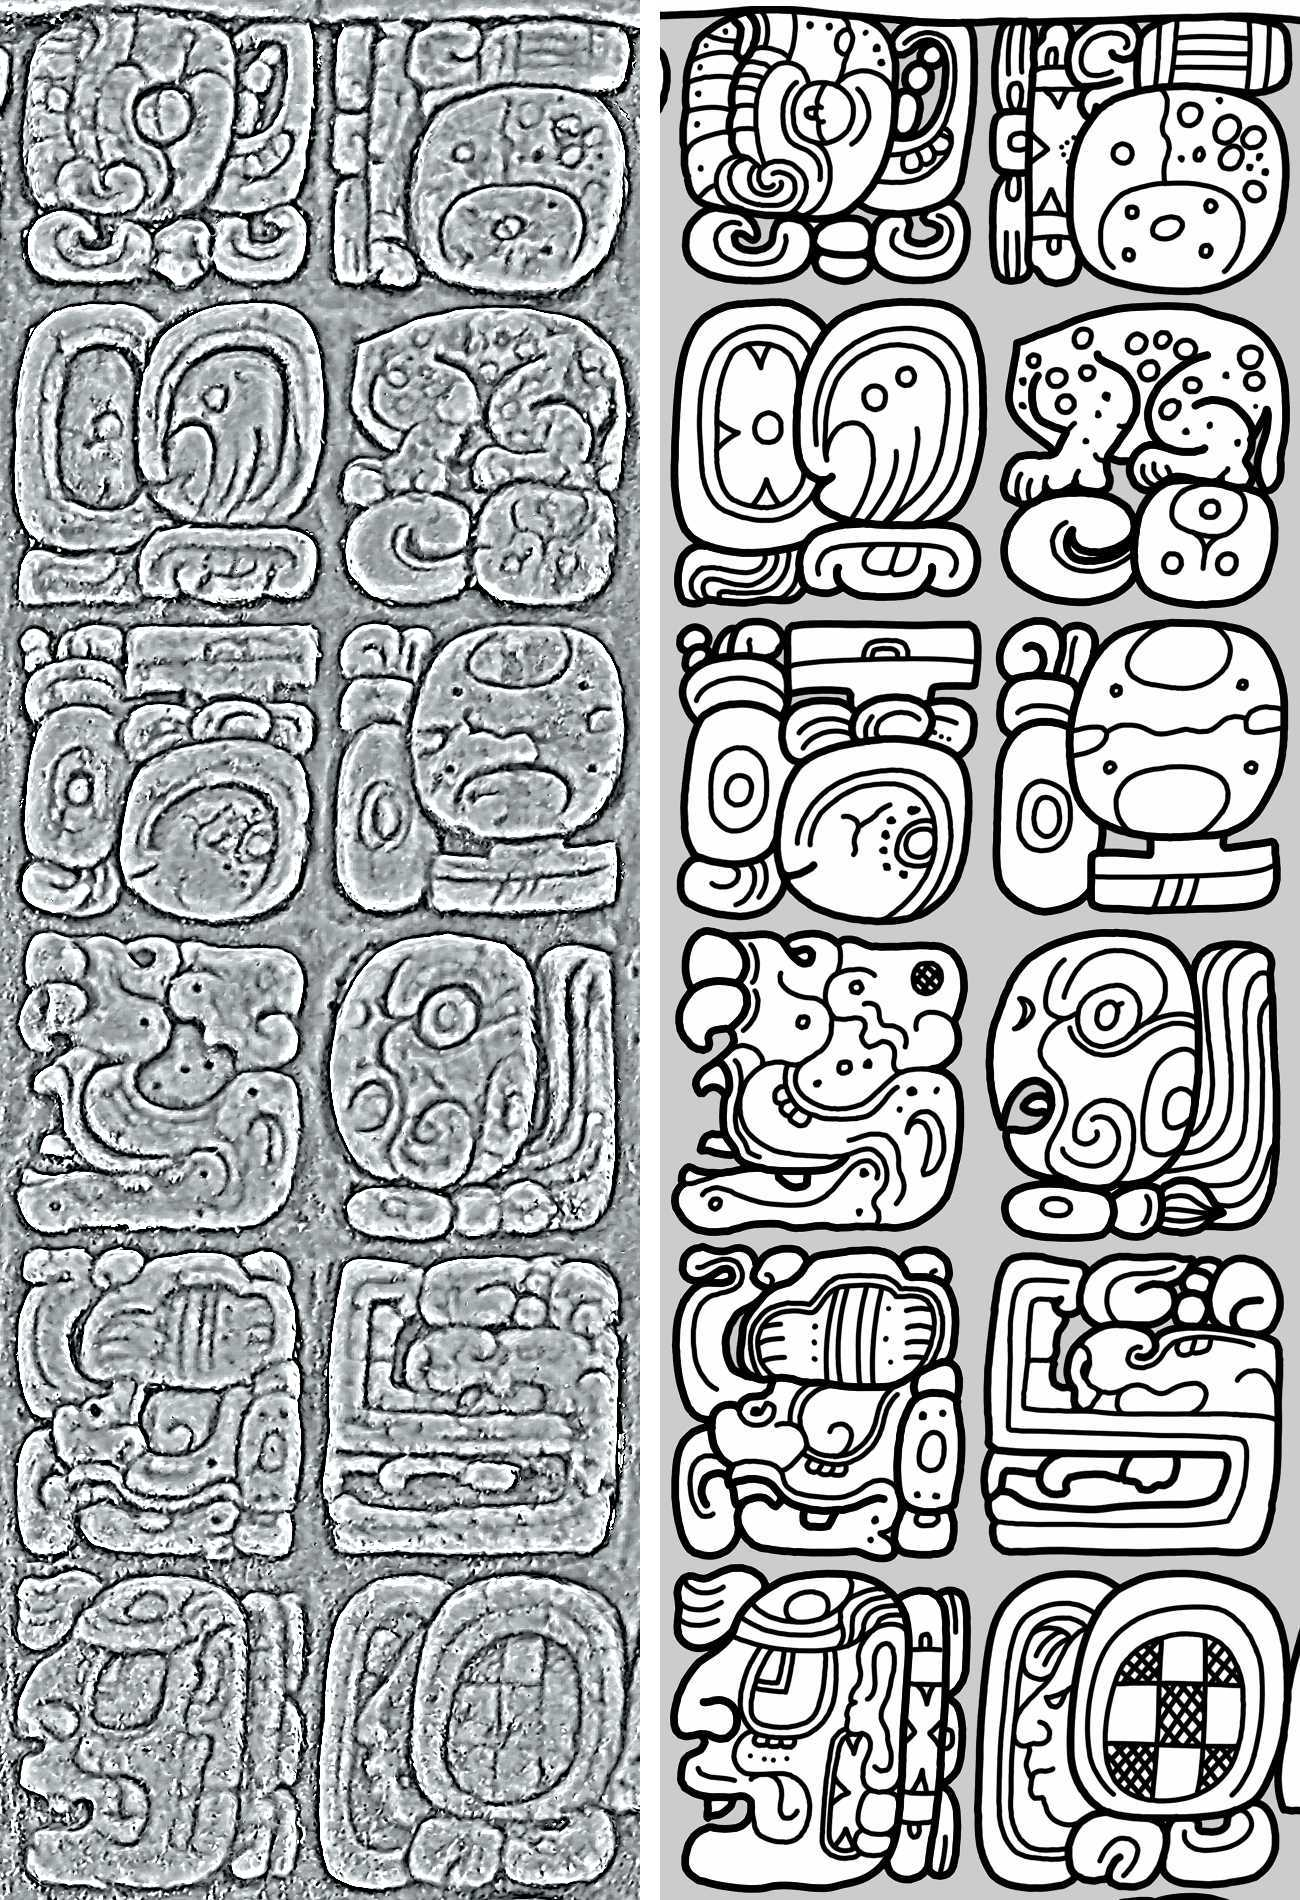 tz u0027atz u0027 nah a u201enew u201c term in the classic mayan lexicon